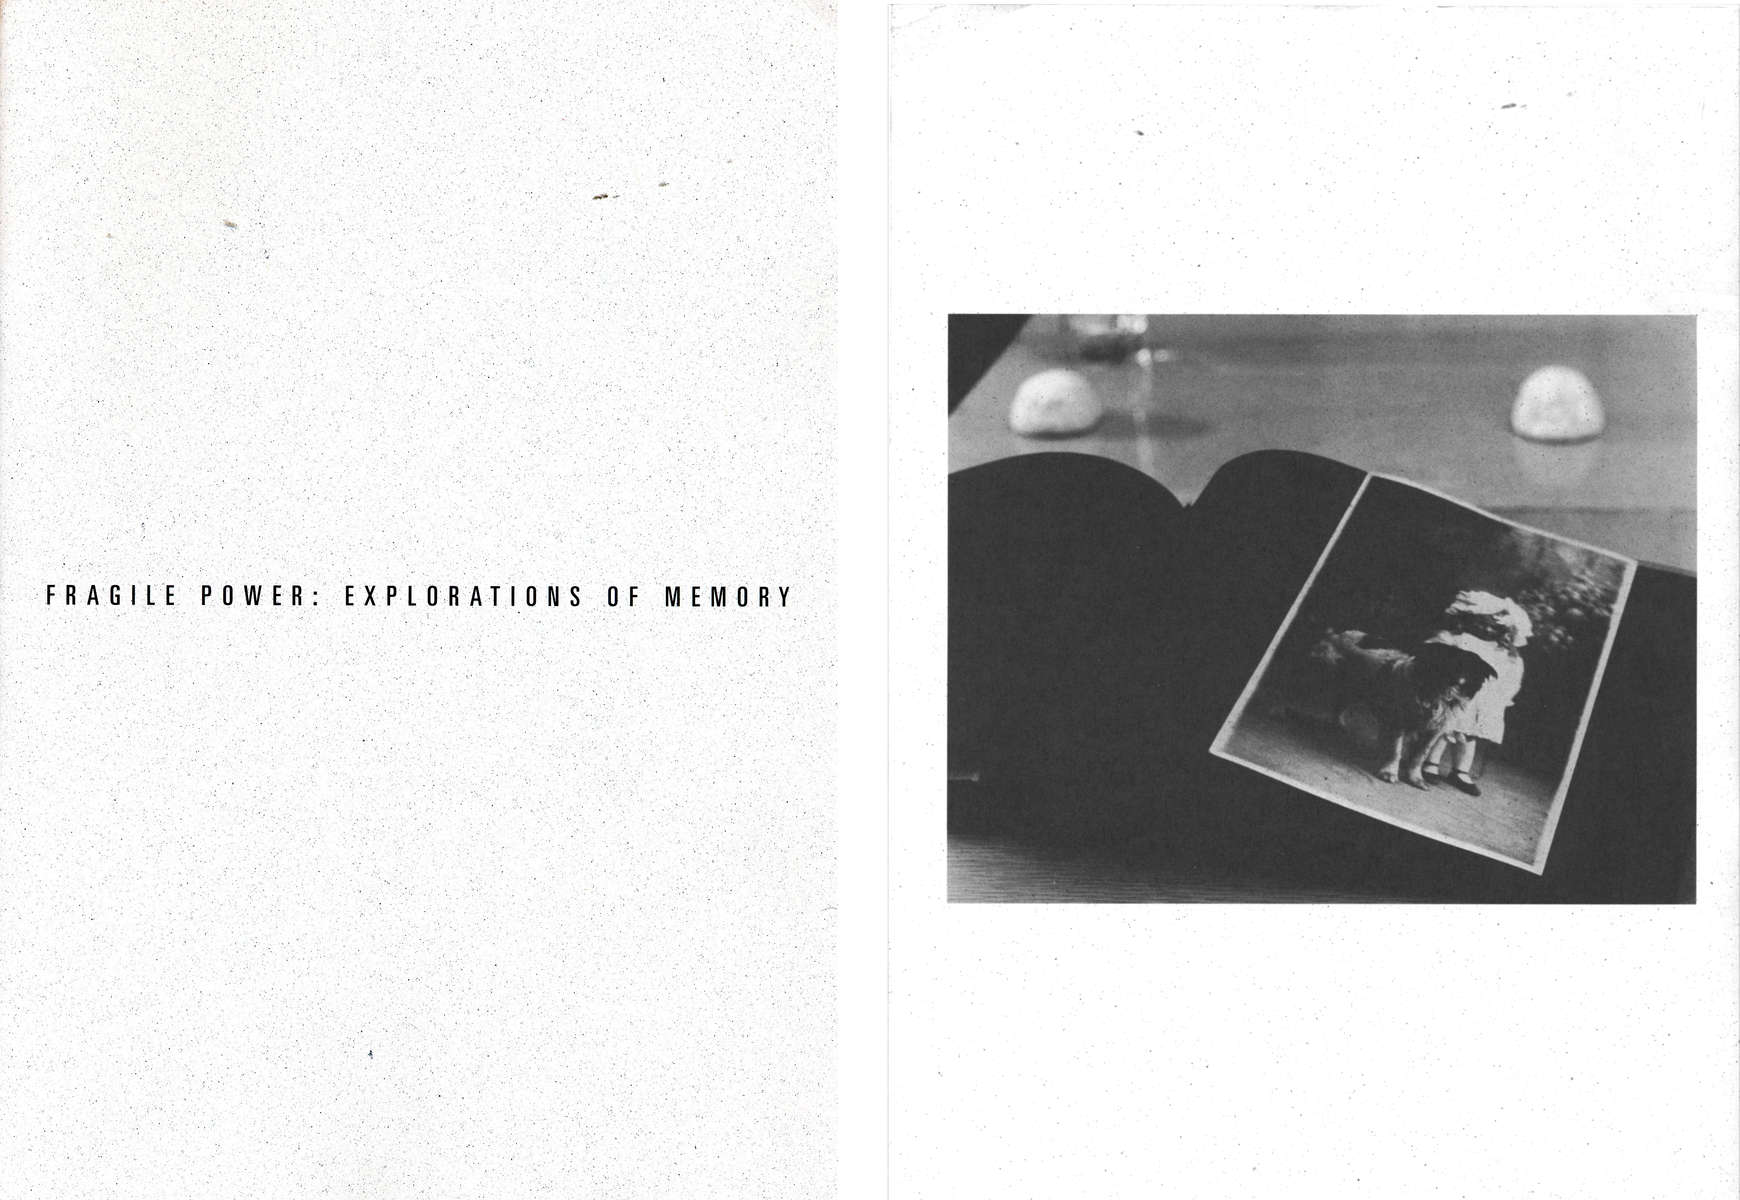 Fragile Power: Explorations of Memoryexhibition catalogue1993curated by Mary J. Olmsted and Daniel L. ShacterThe Newton Art Center, Newtonville, MAback cover © Anne Turyn